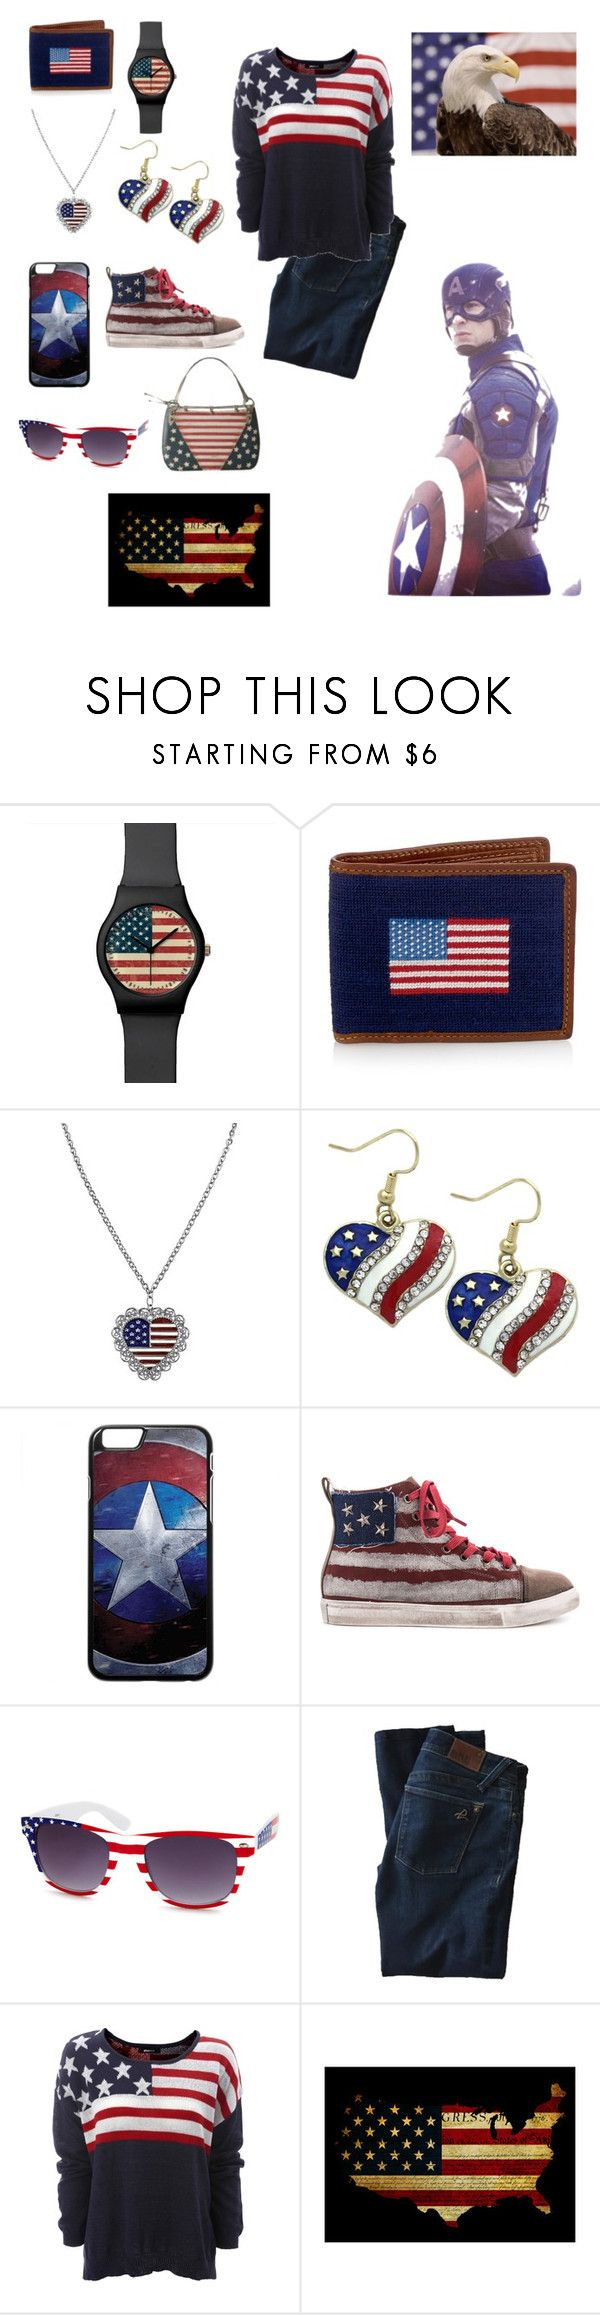 """All American"" by ymccurdy ❤ liked on Polyvore featuring 1928, Penny Sue, Charlotte Russe, DL1961 Premium Denim and MINNA"